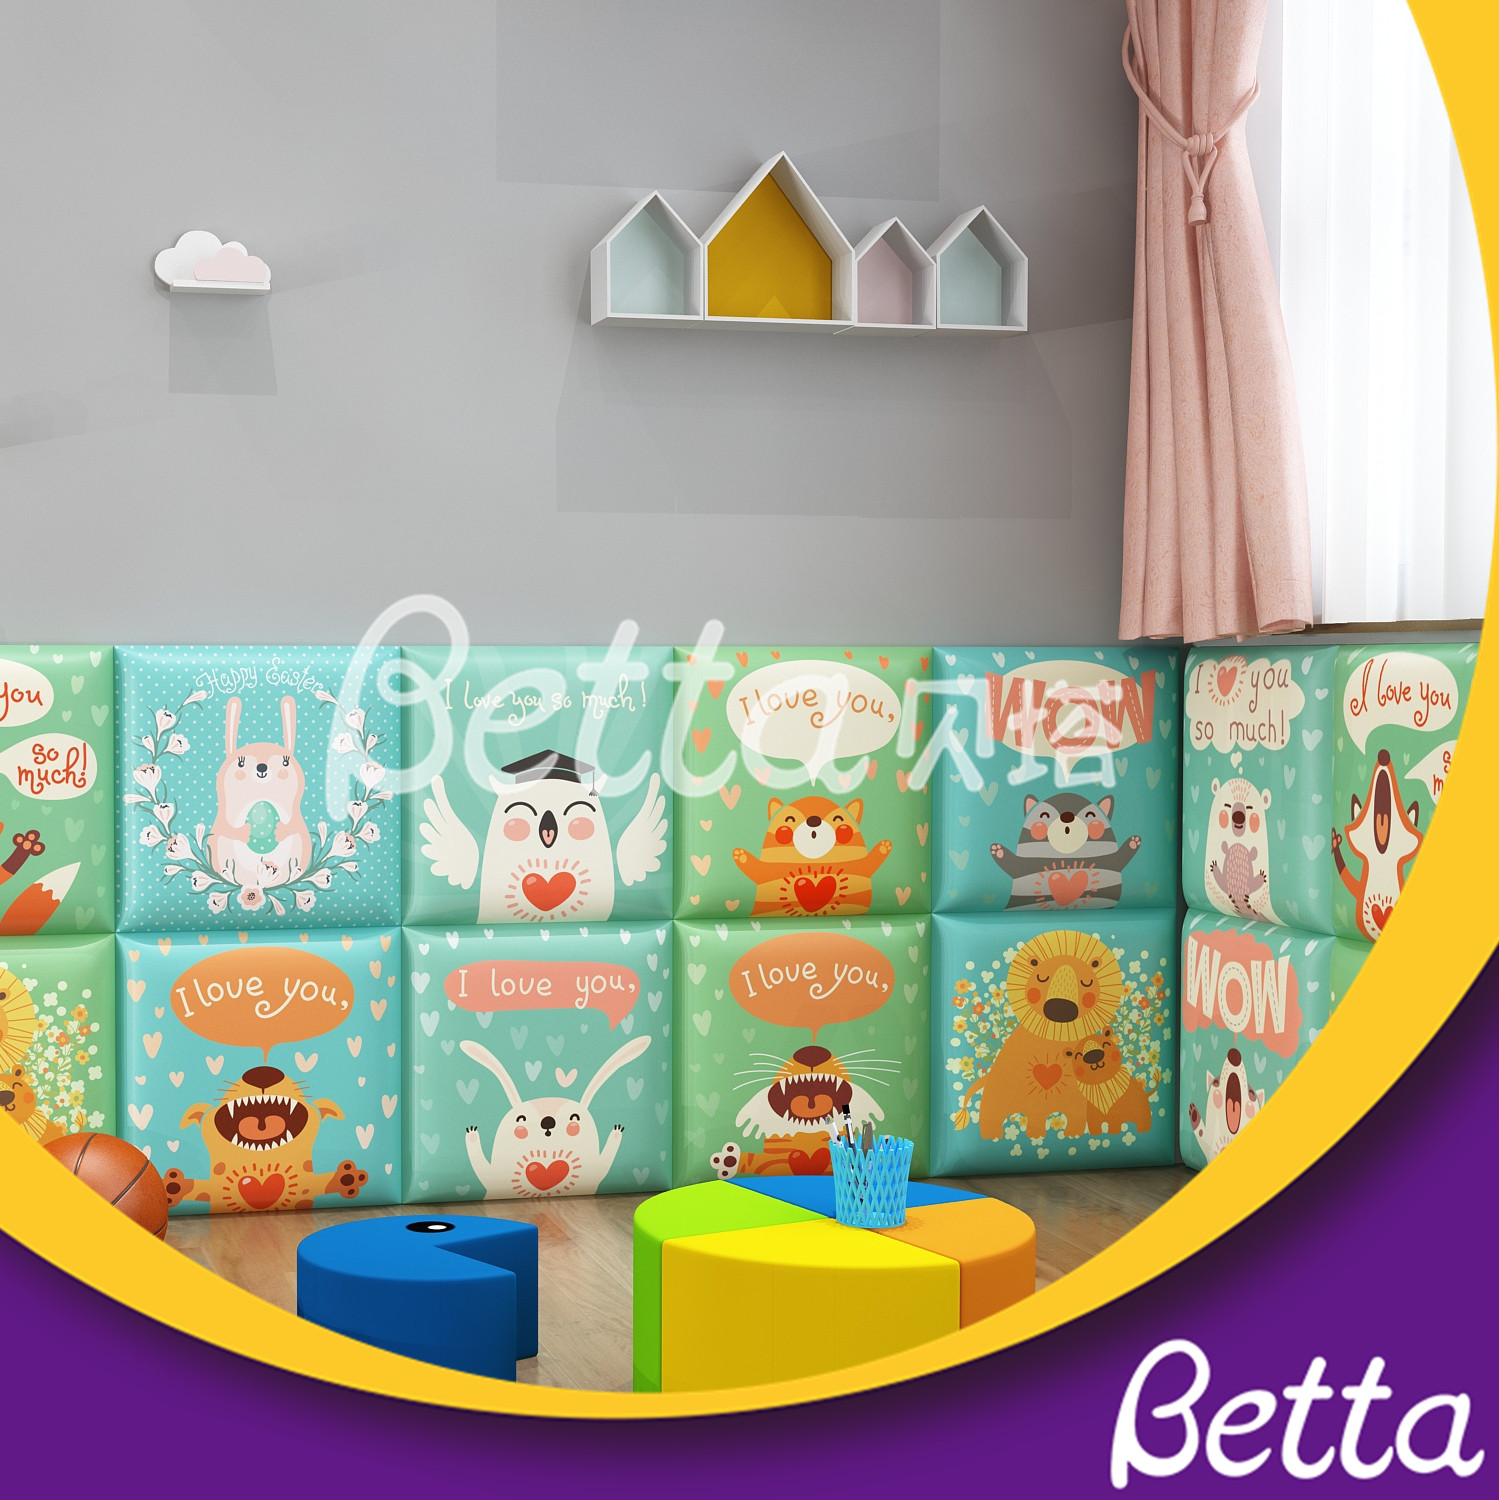 Safety Soft Wall Bumper Animals Wall for Children's Room Indoor Playground